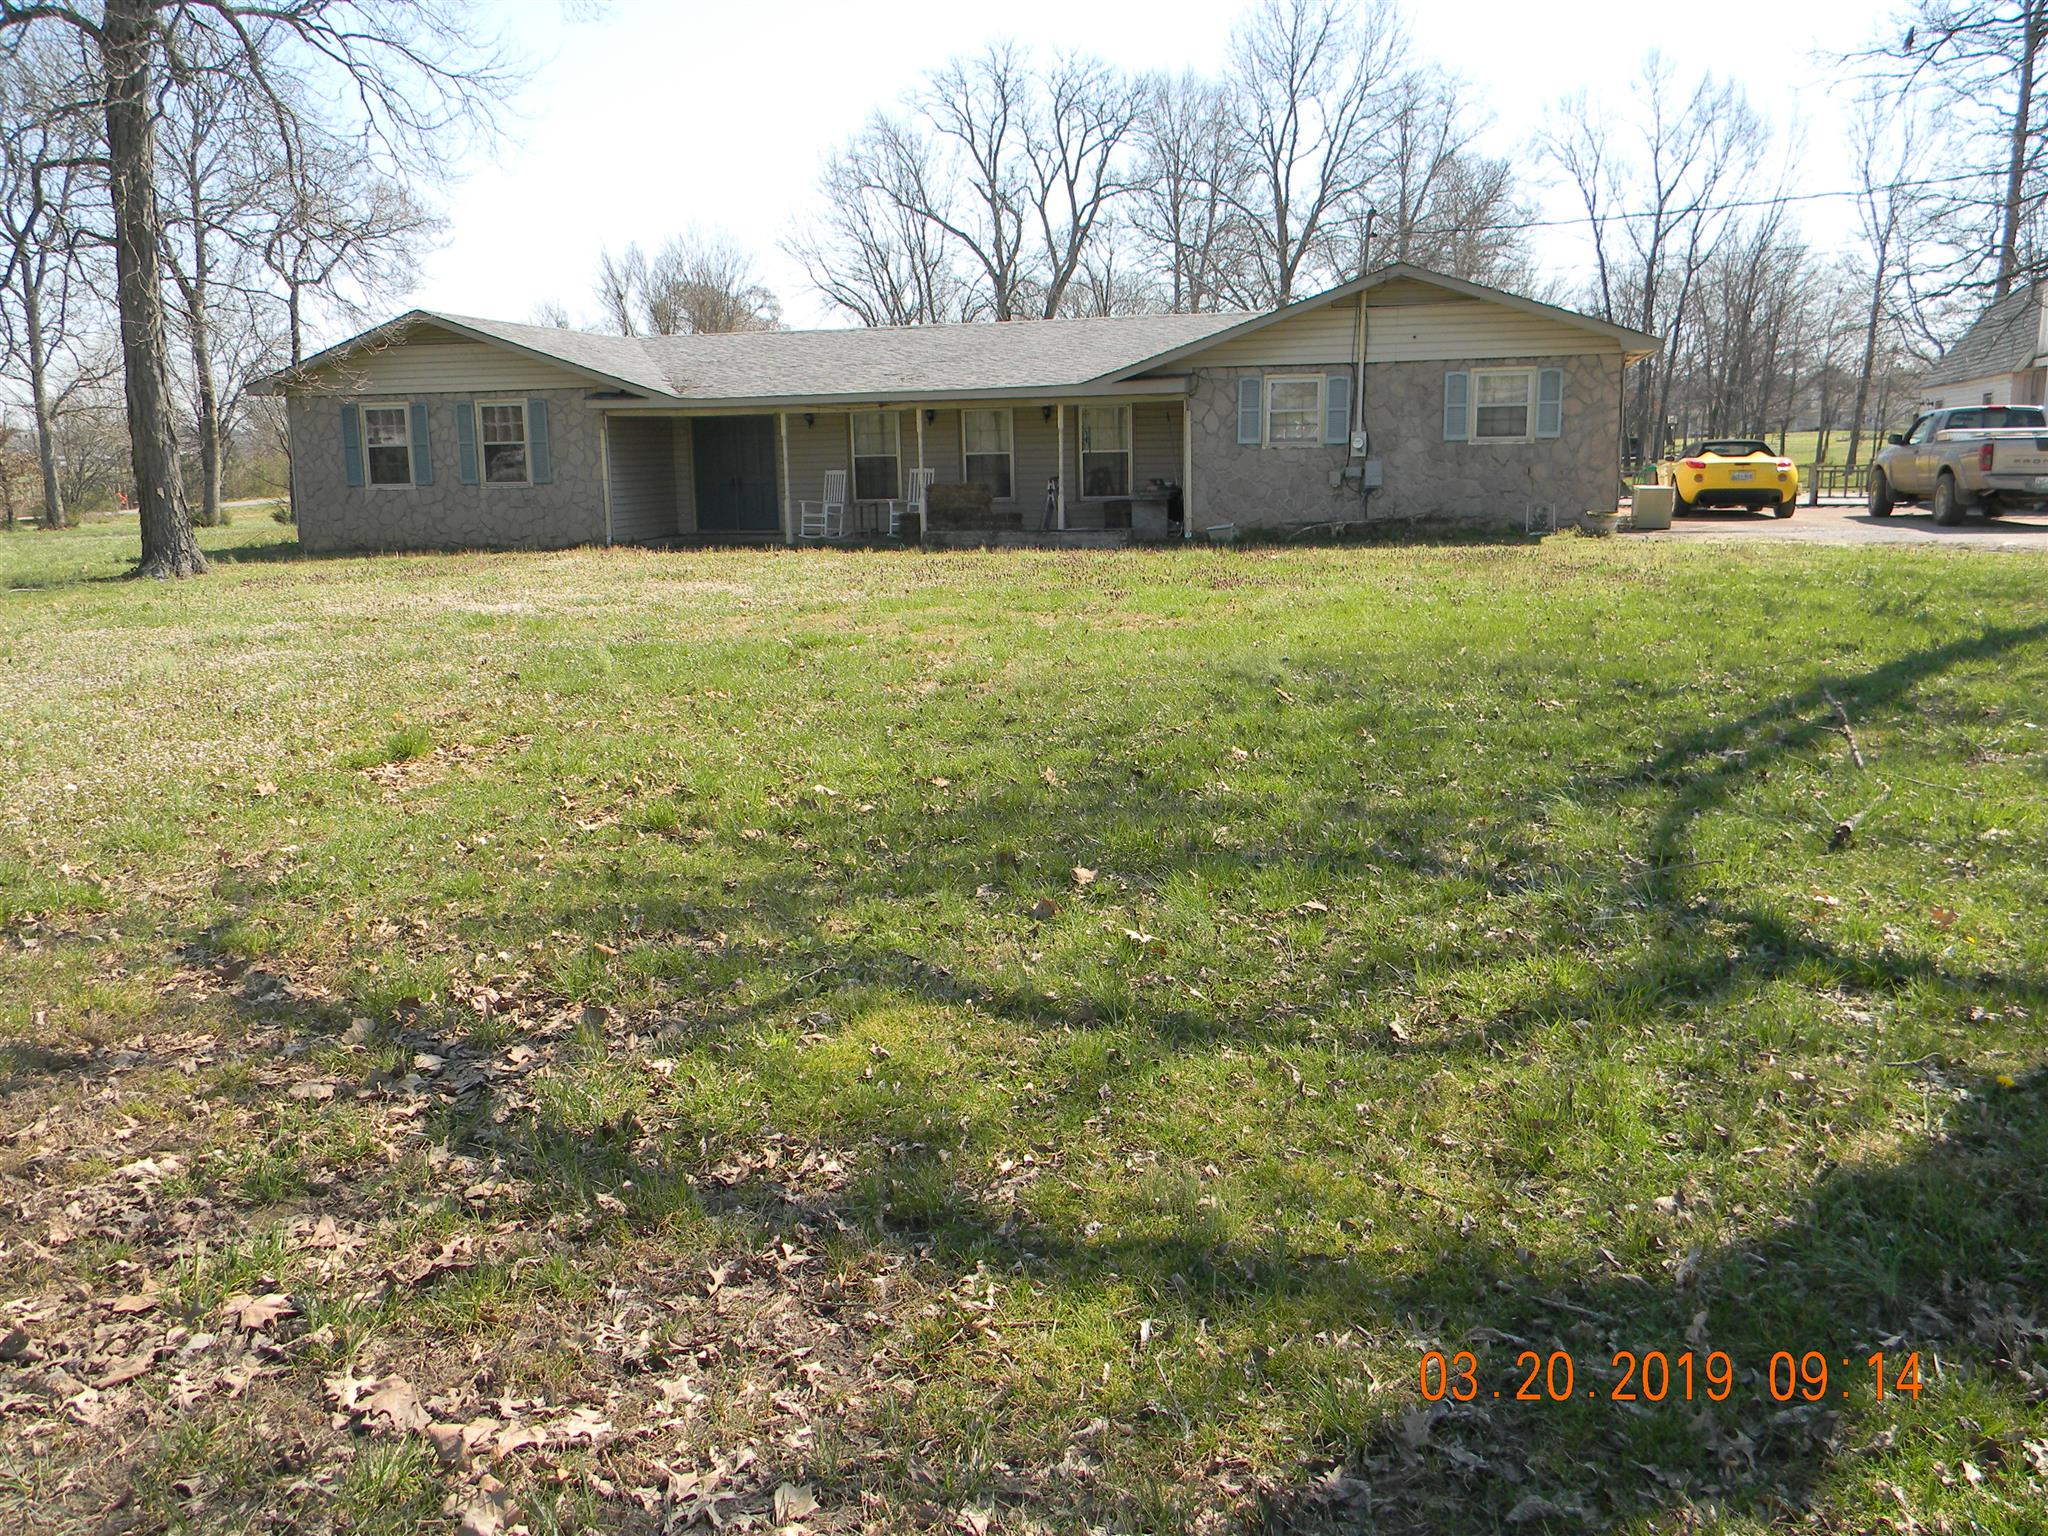 2520 Hwy 231 N, Shelbyville, TN 37160 - Shelbyville, TN real estate listing